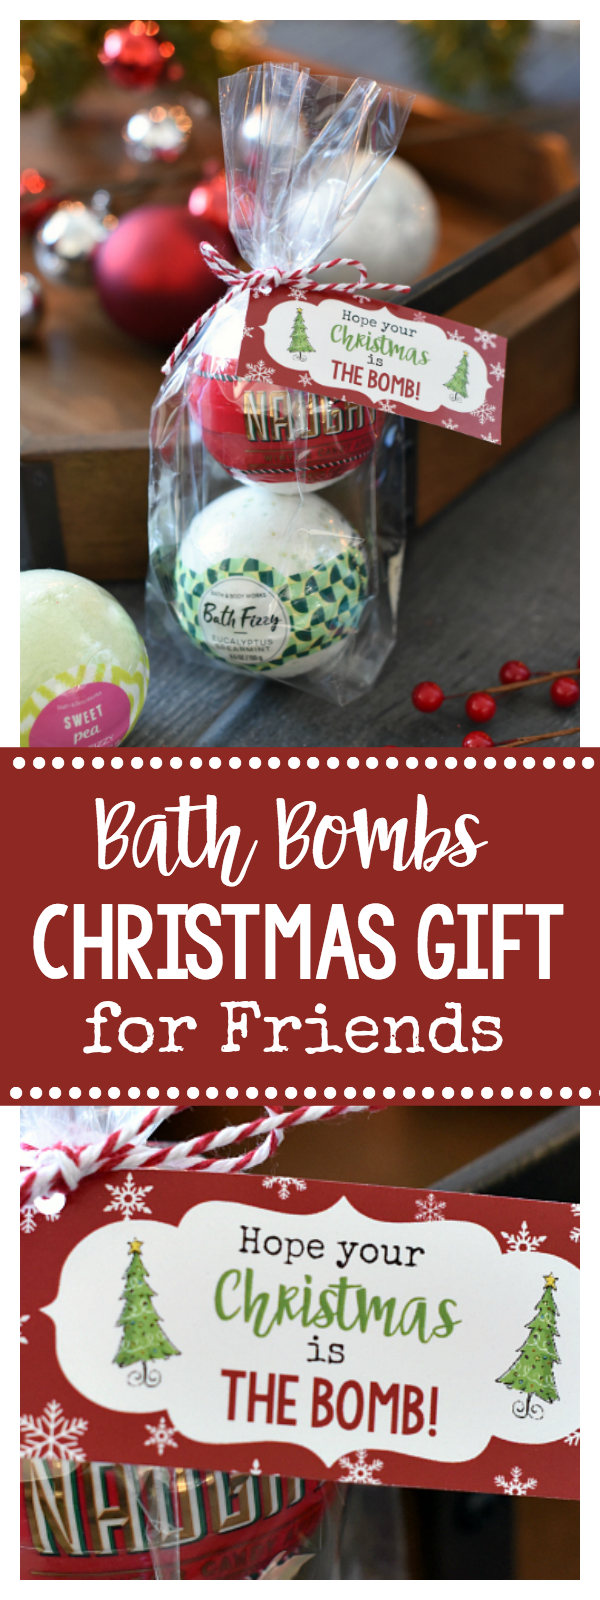 Bath Bombs Gift Idea for Christmas for Friends